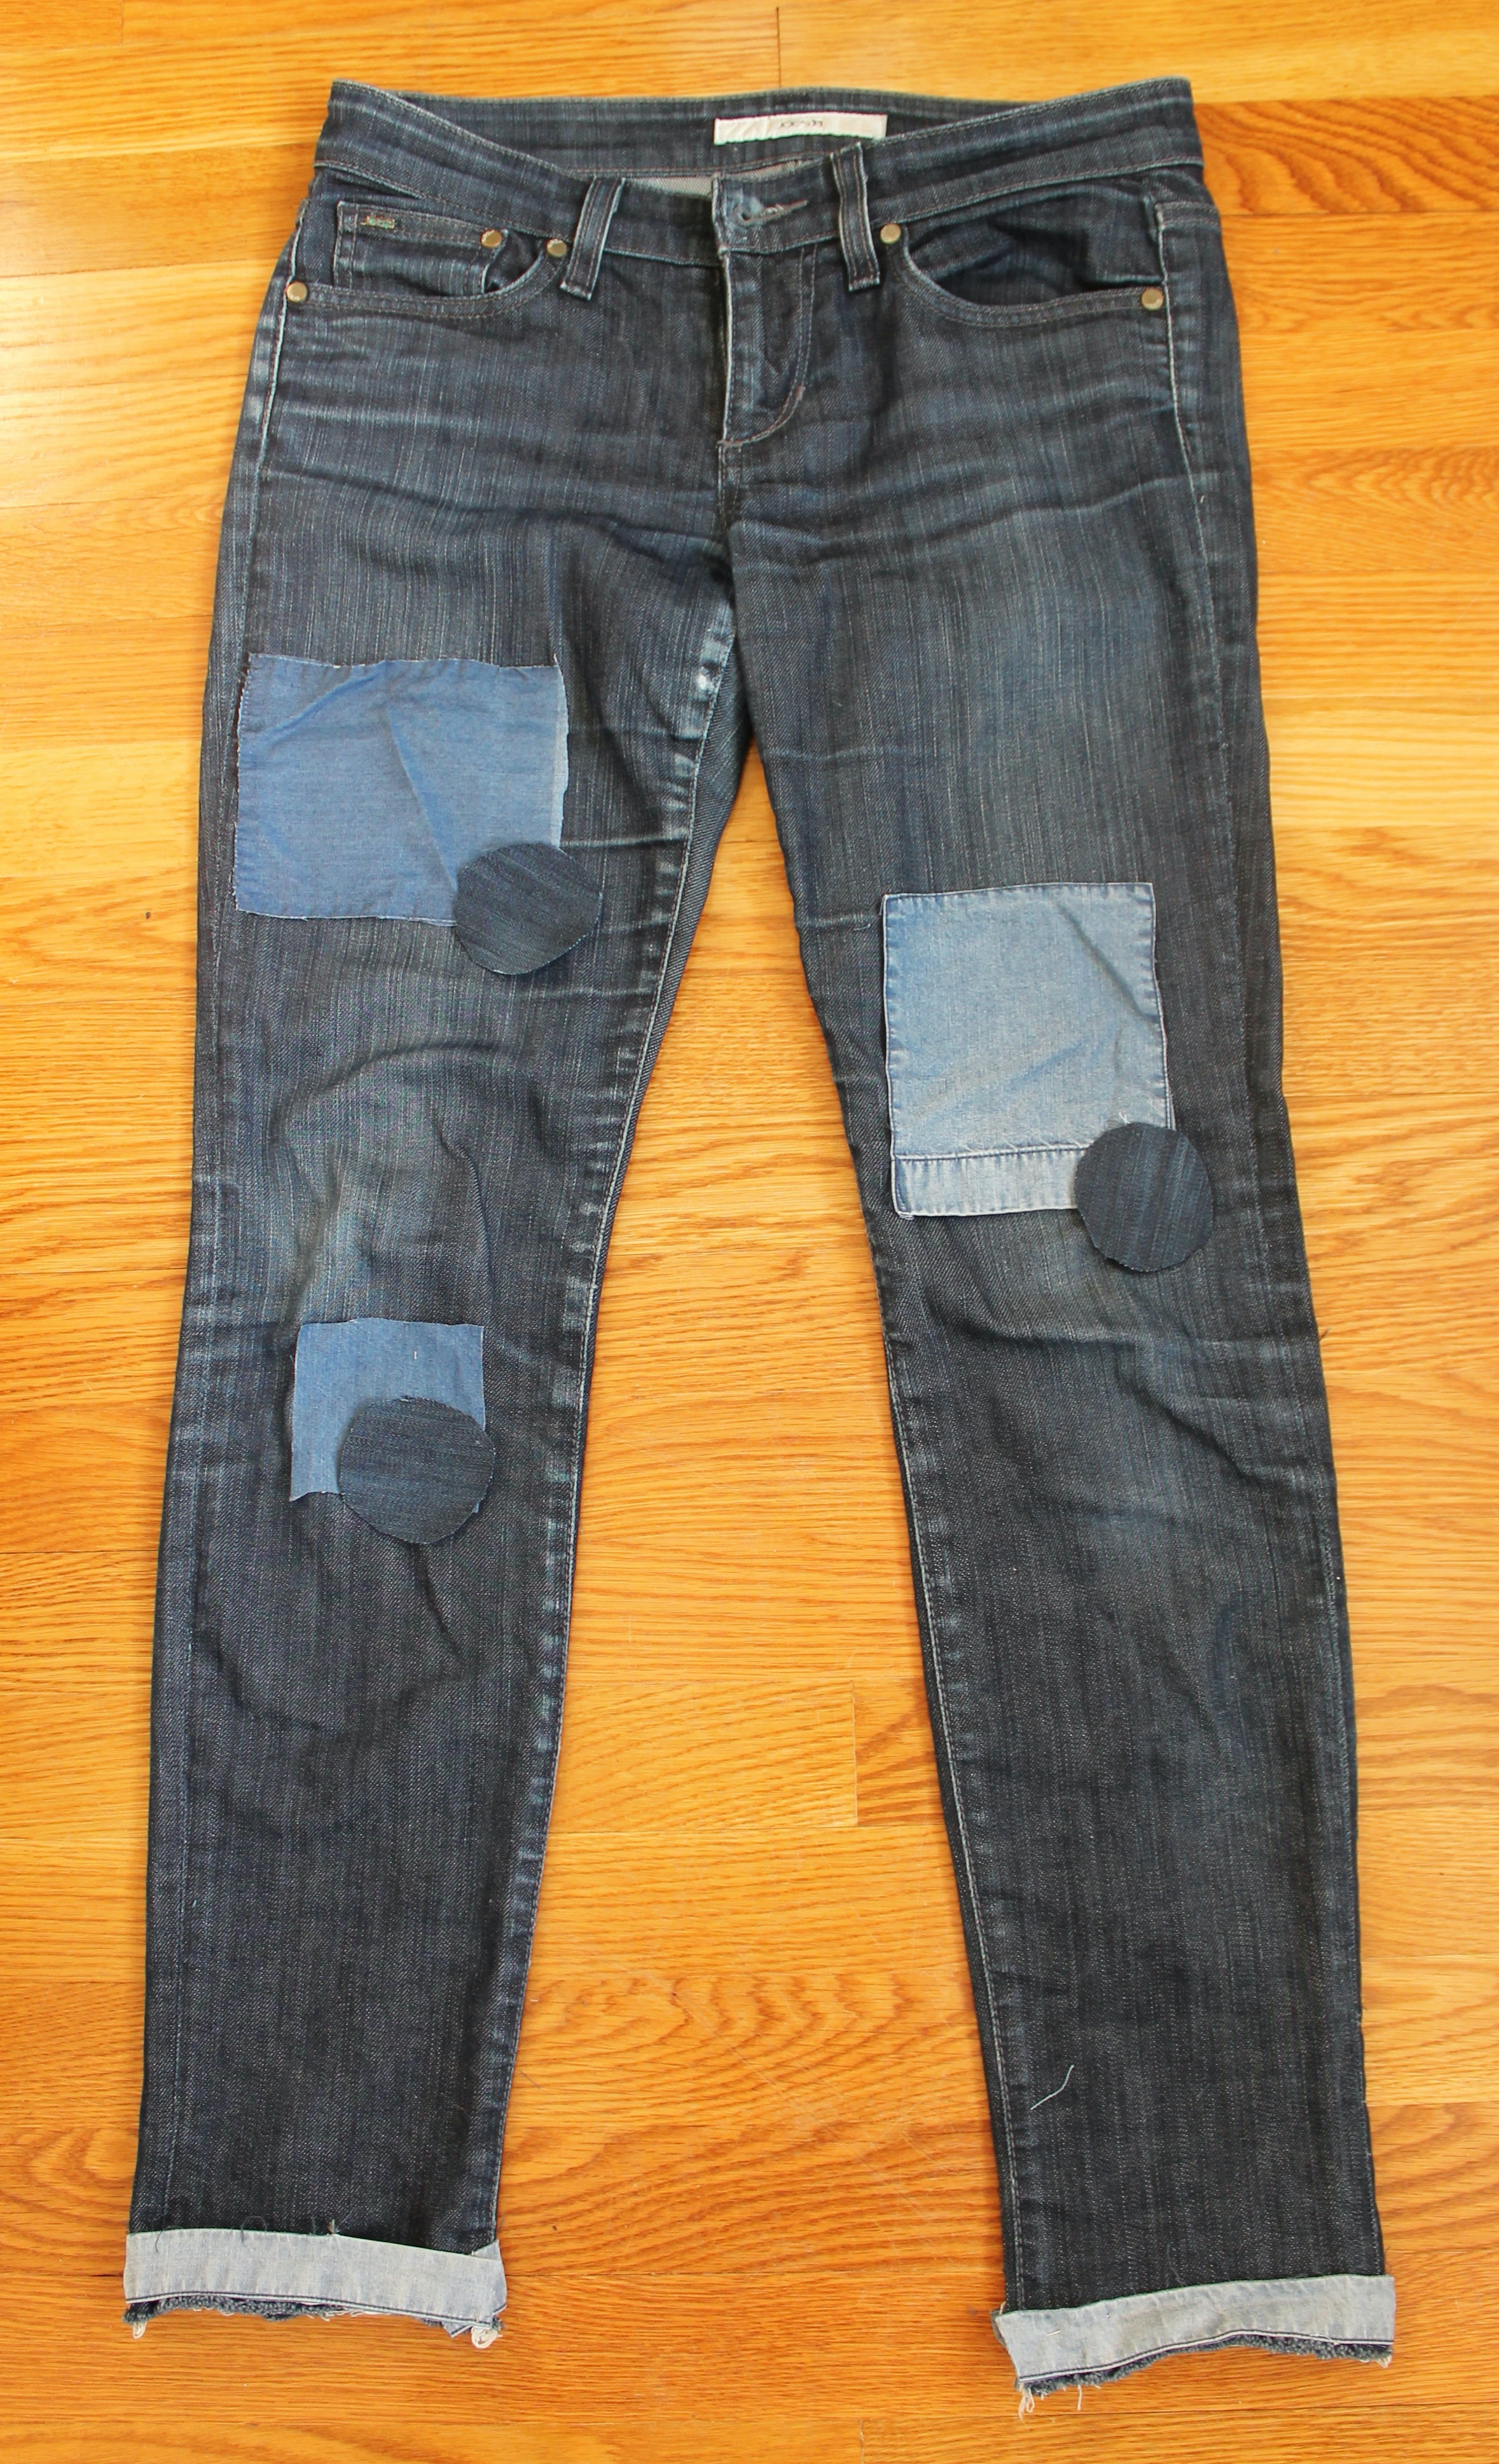 How to make a patch on jeans 5